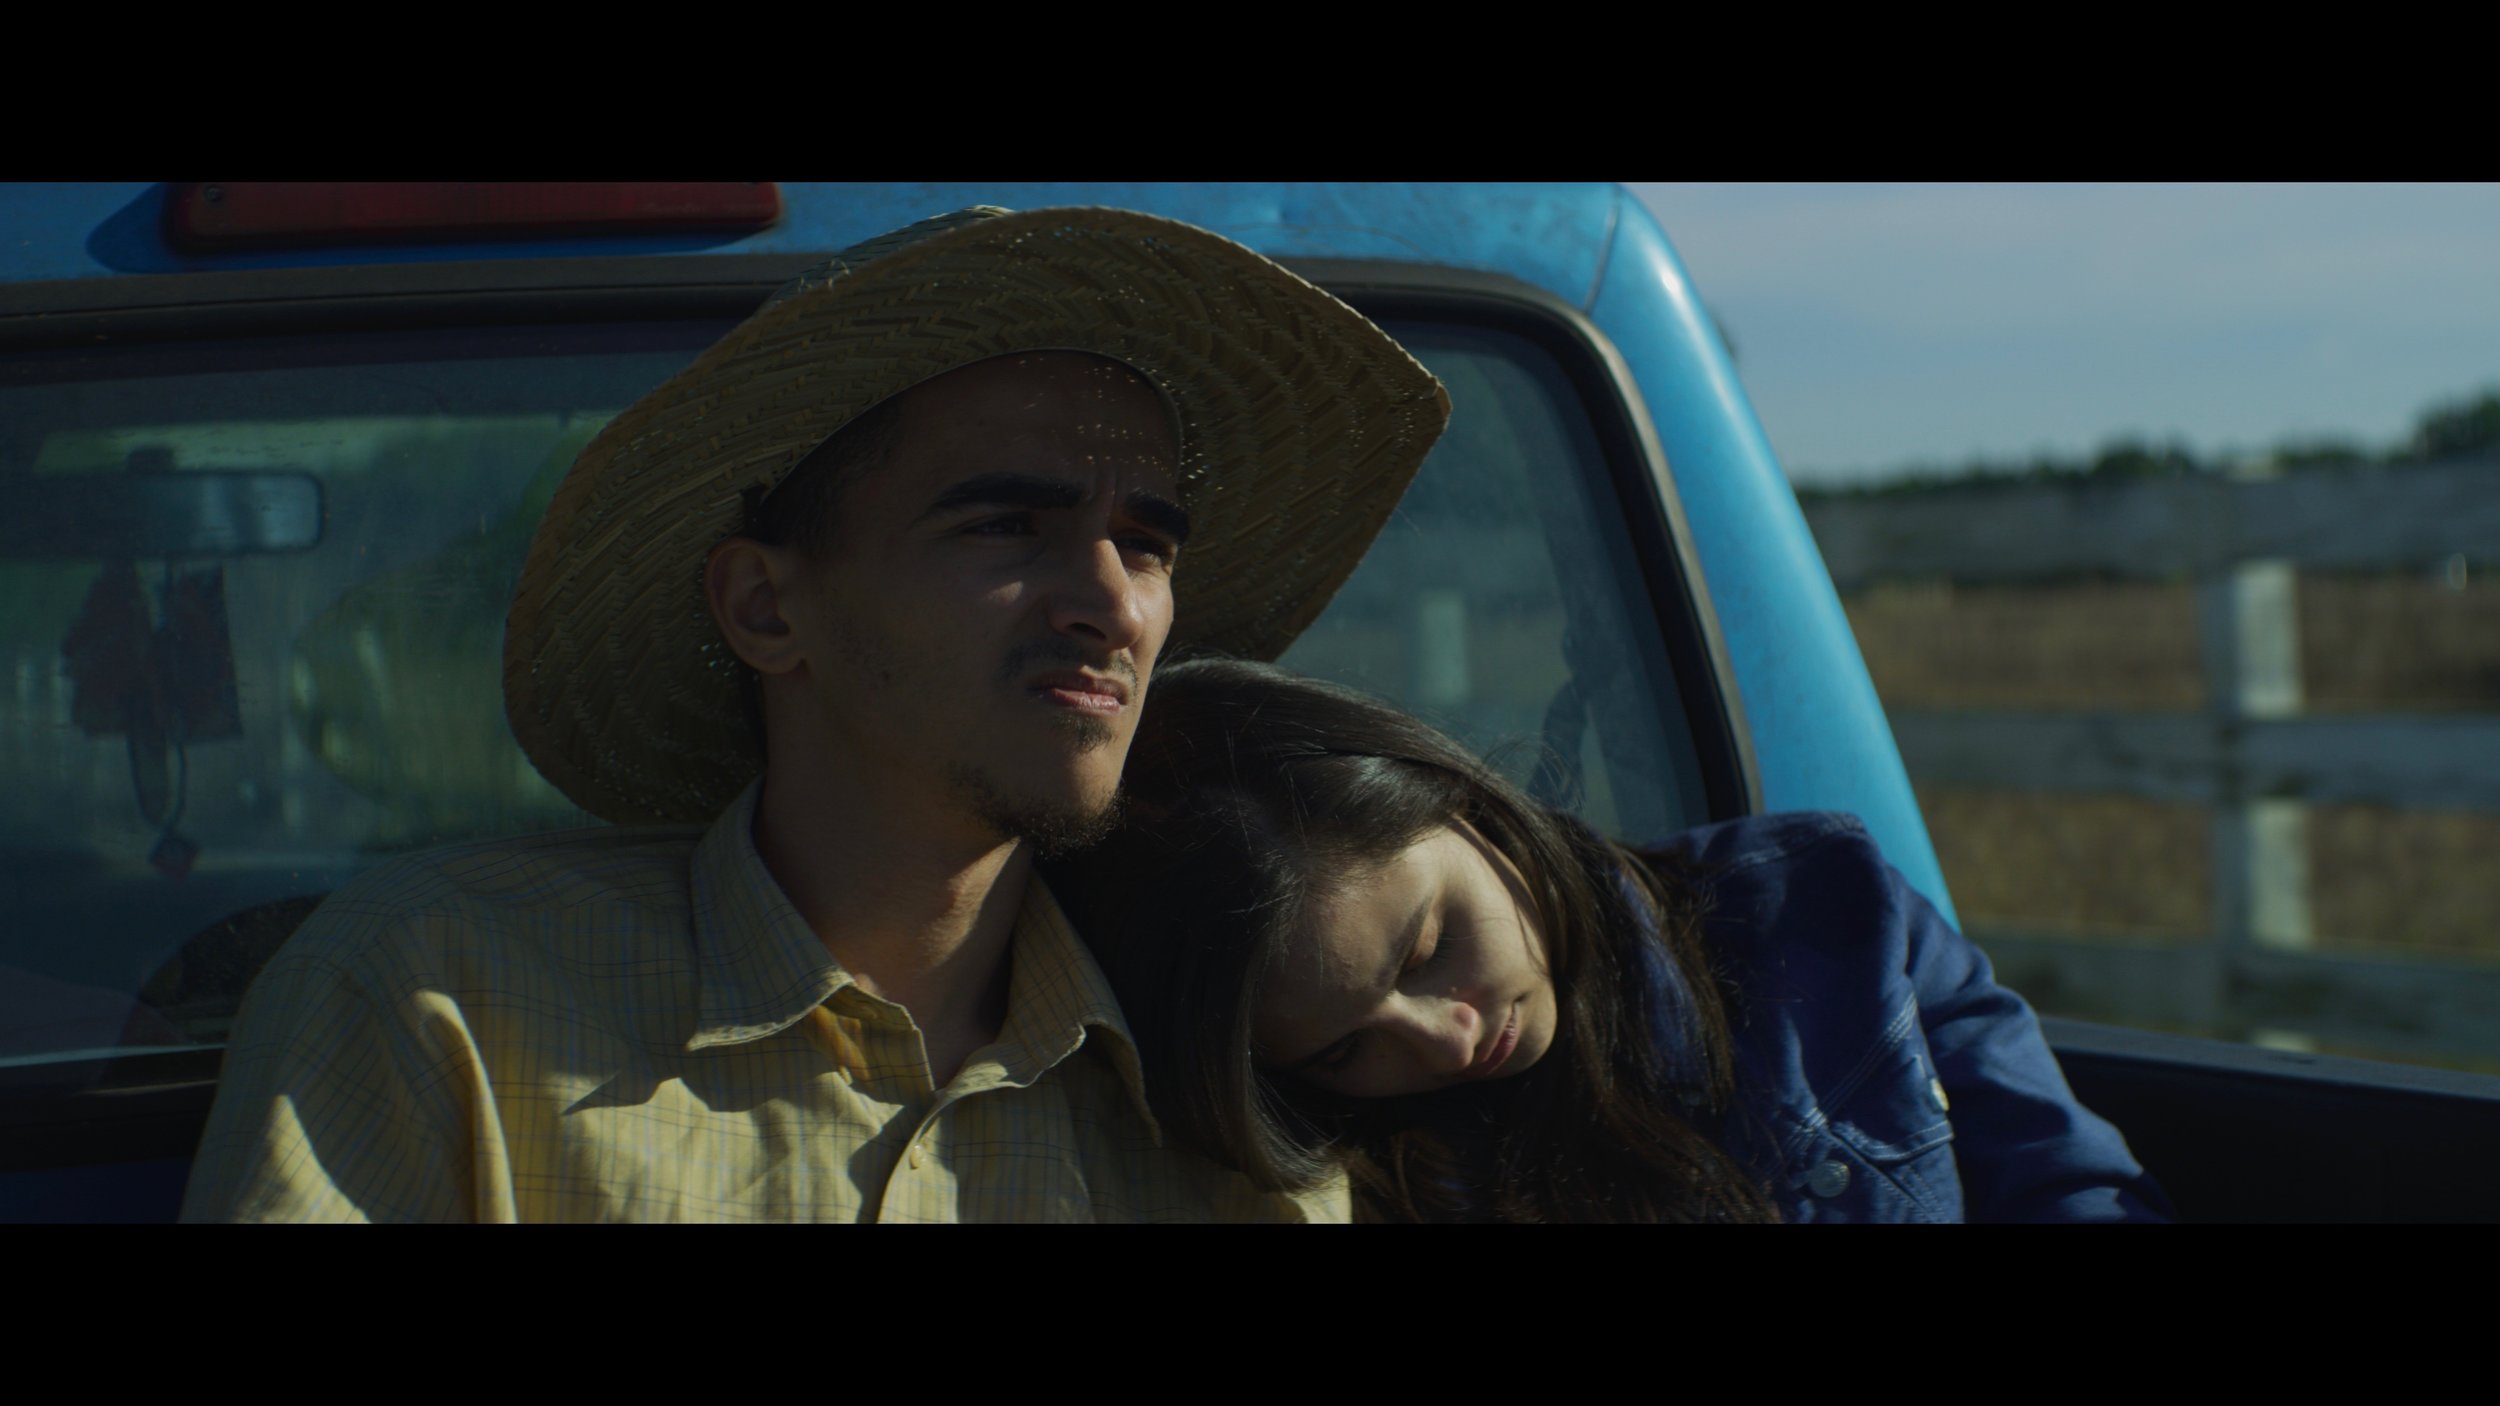 José - José is a 2nd generation latino that grew up in South Florida, working on his father's horse ranch. He's attracted to Maria, but wonders if she's truly pursuing him for love.